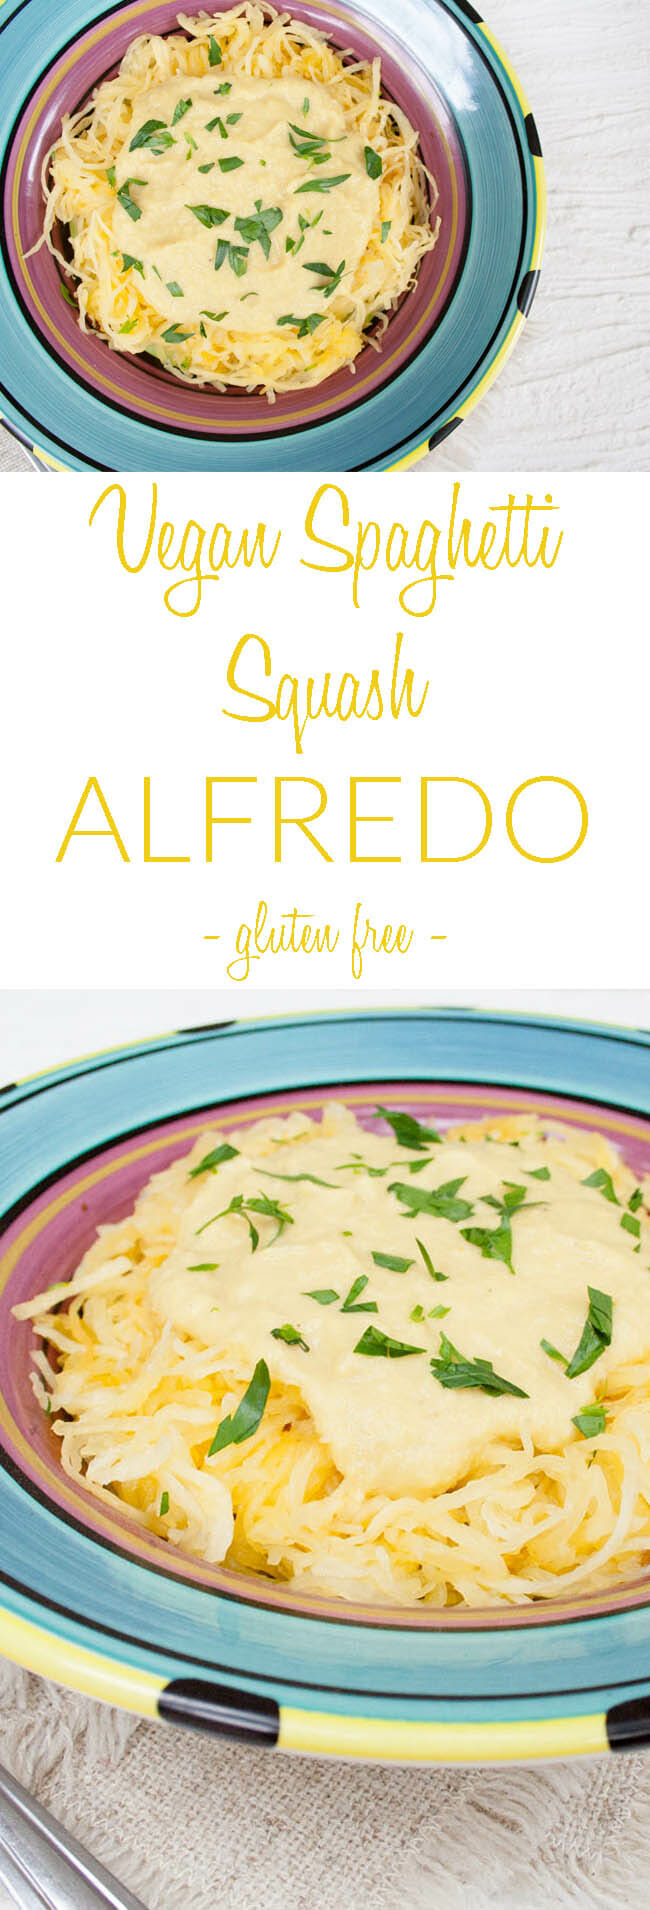 Vegan Spaghetti Squash Alfredo collage photo with text.